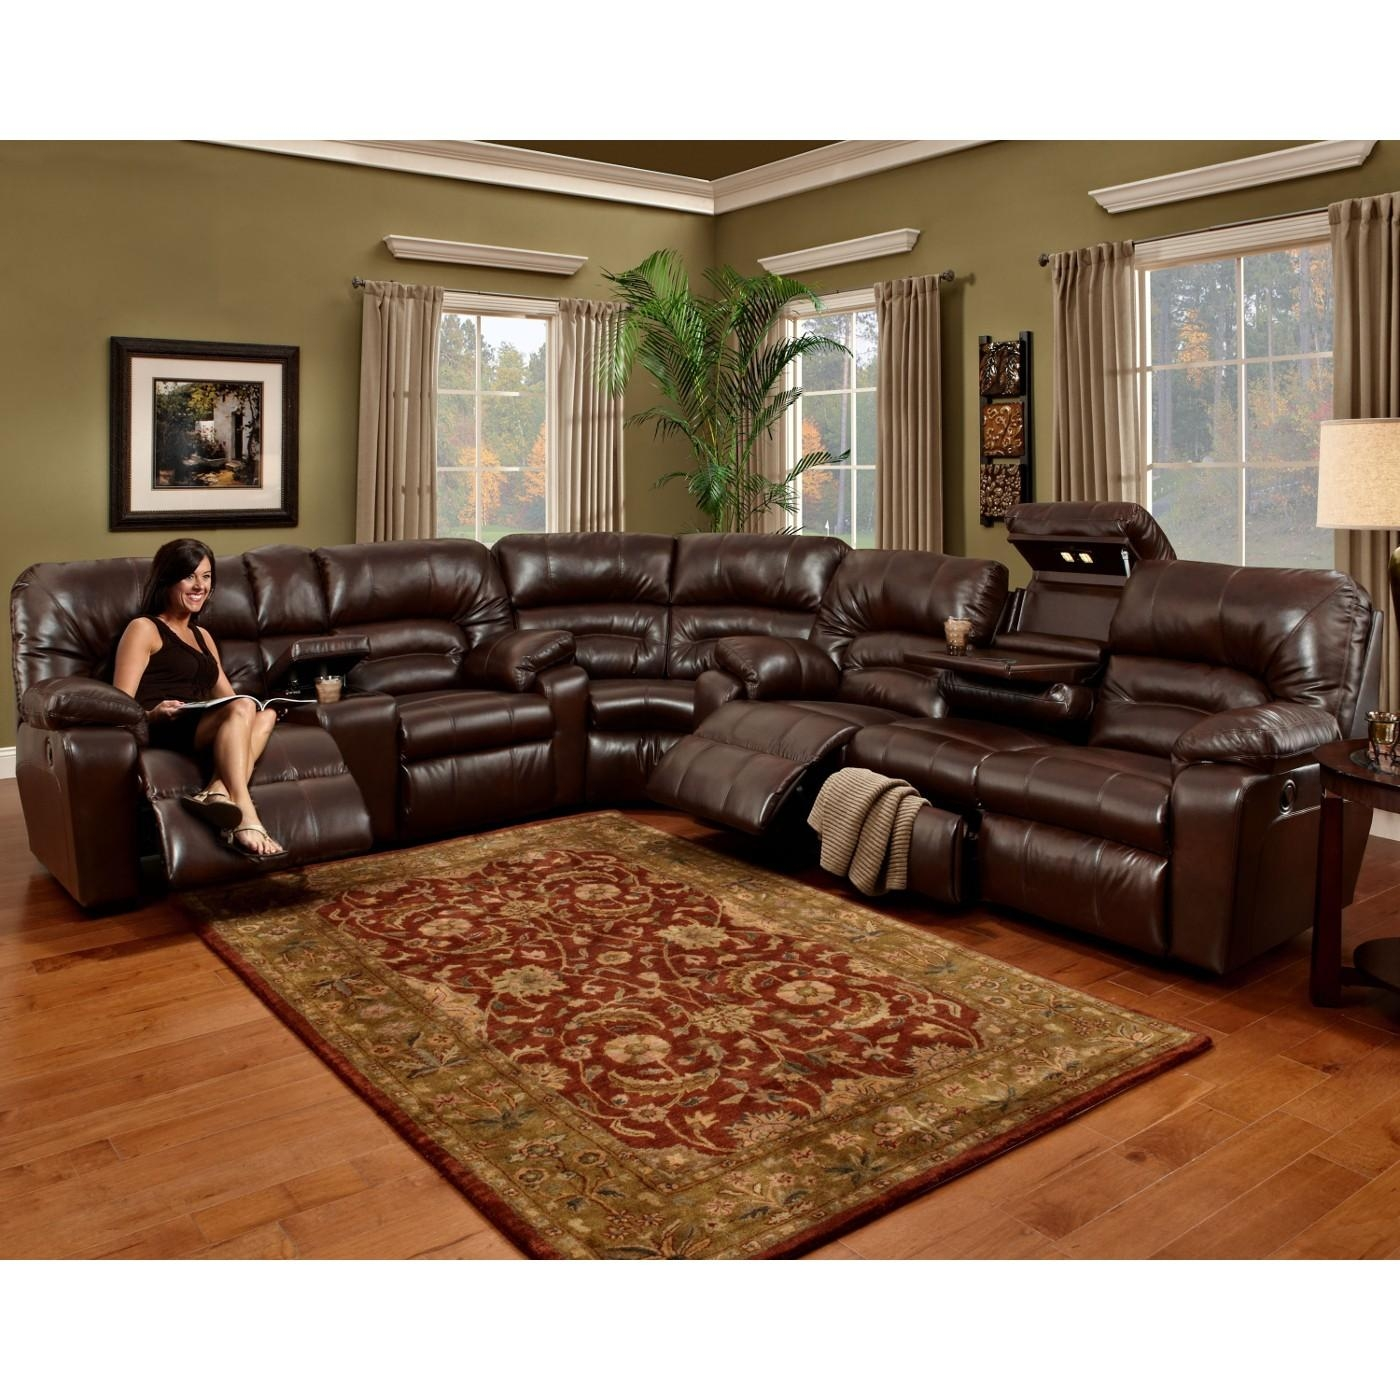 Media Room Sectional Sofas Artistic Color Decor Best With Media With Regard To Media Room Sectional (Image 9 of 20)